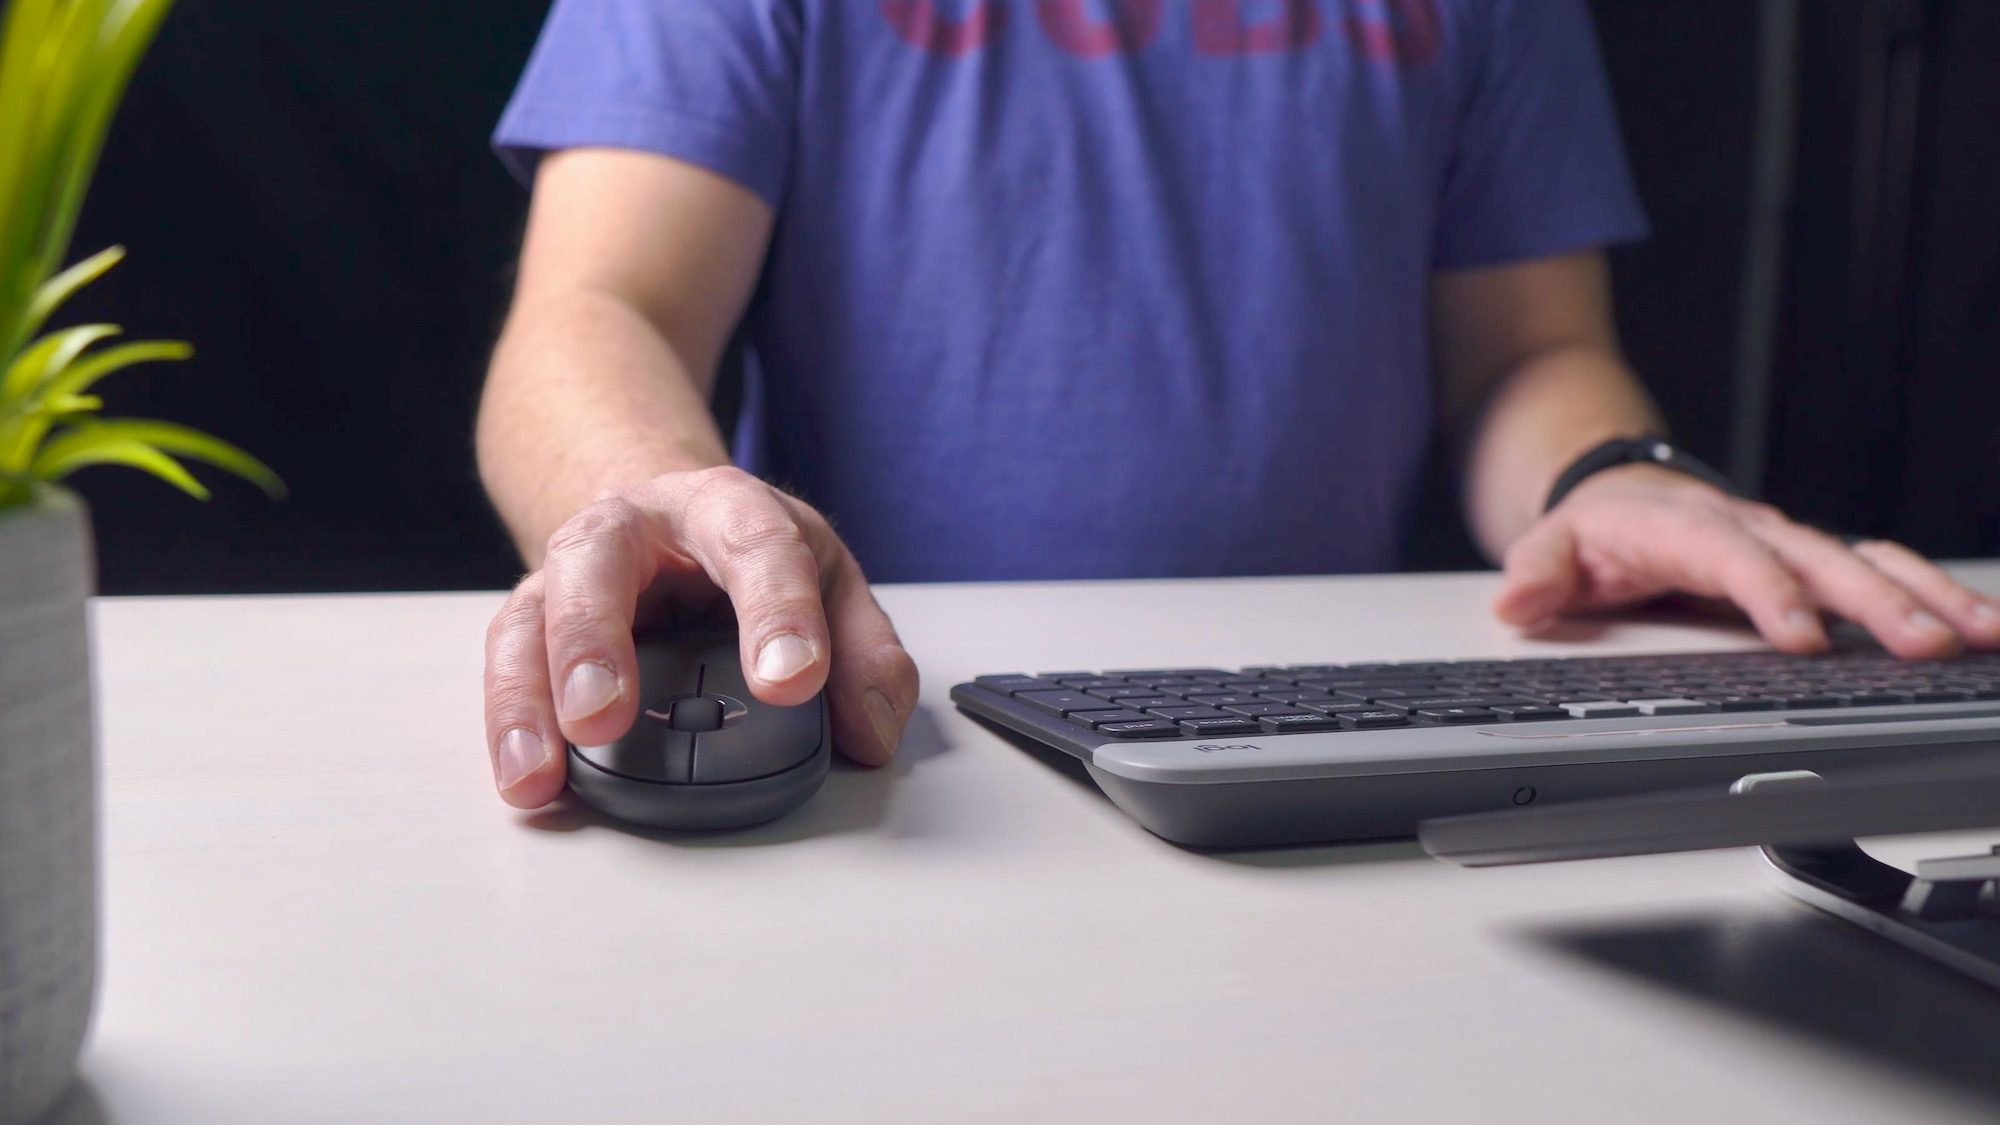 Don't miss this chance to score a free Logitech keyboard and mouse